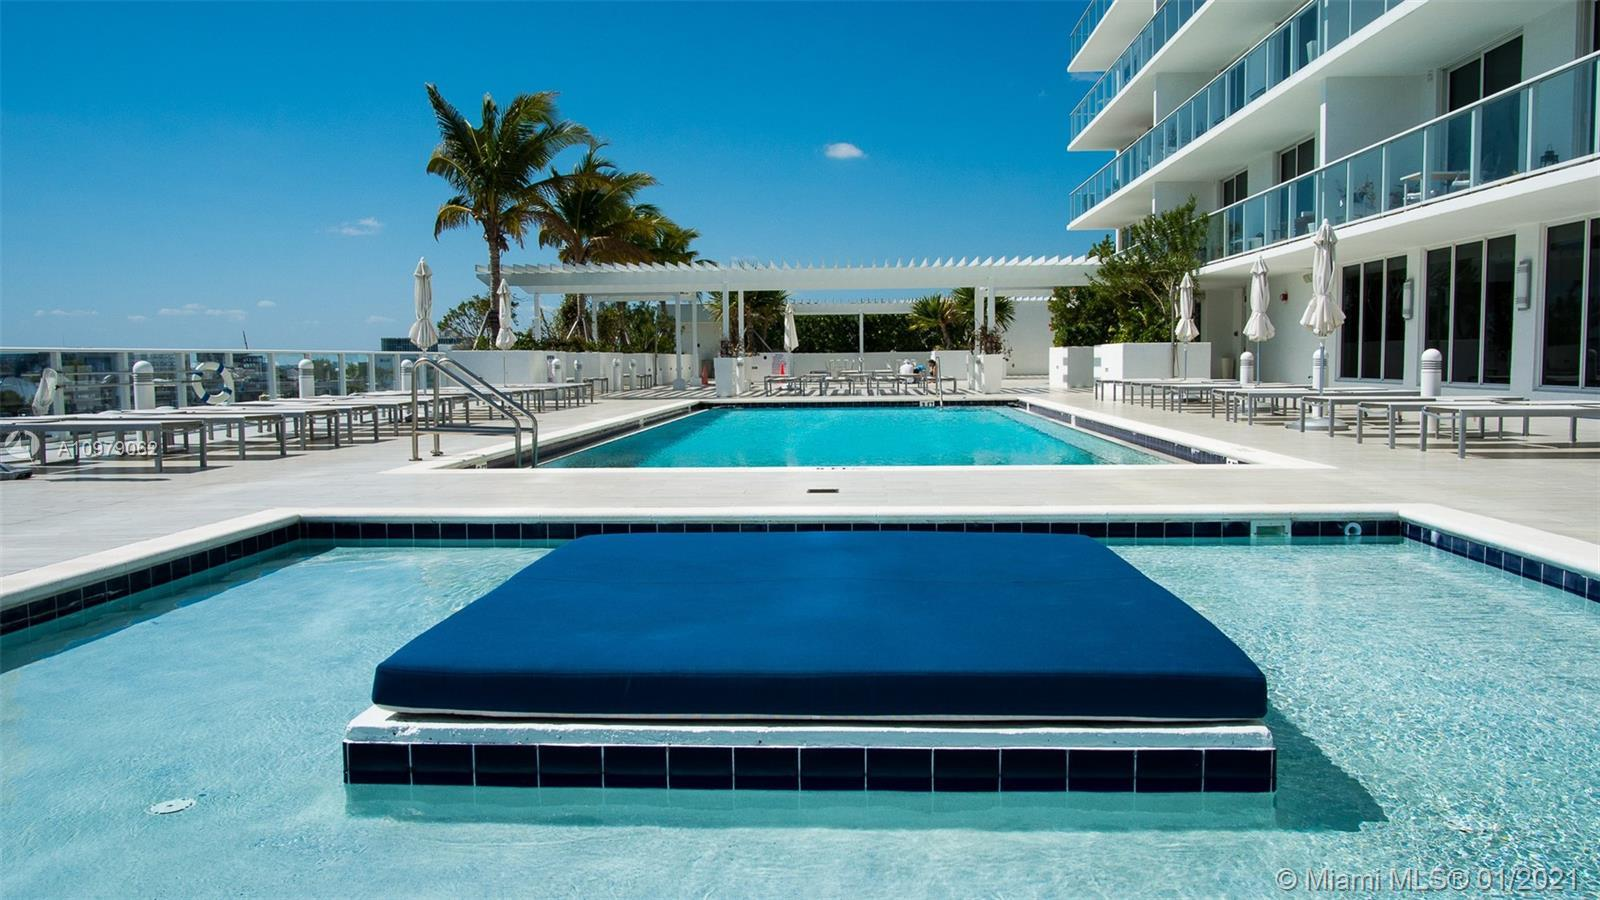 Feel the Luxury Living in a Boutique Style Condo with Spectacular Miami Bay views, 1 Master Bed, and